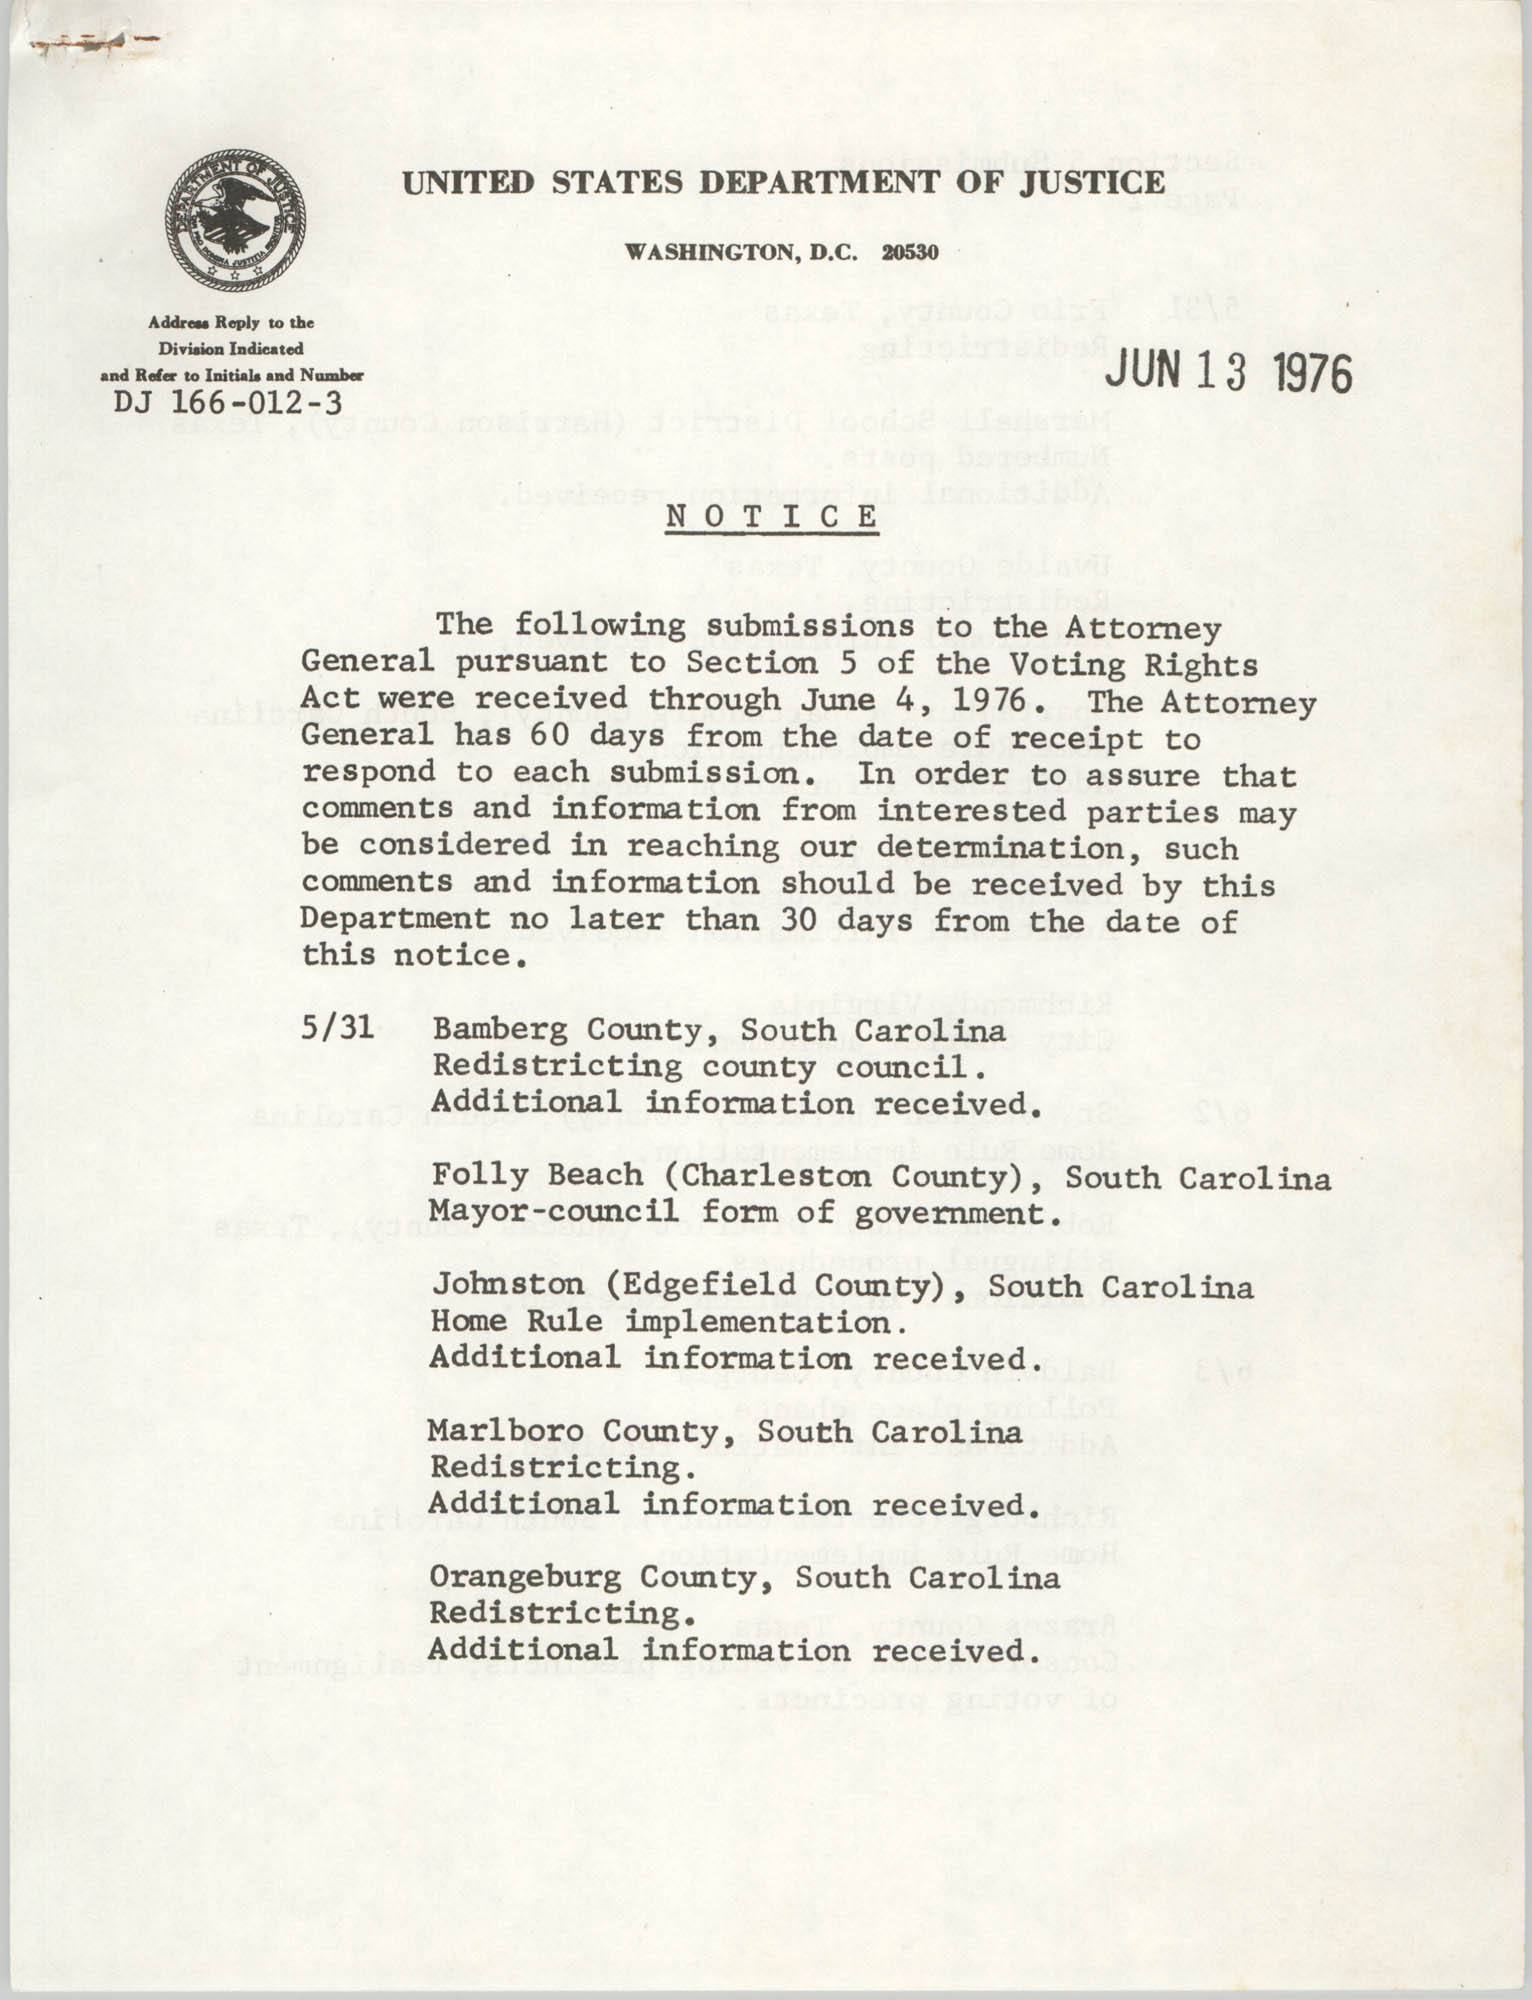 United States Department of Justice Notice, June 13, 1976